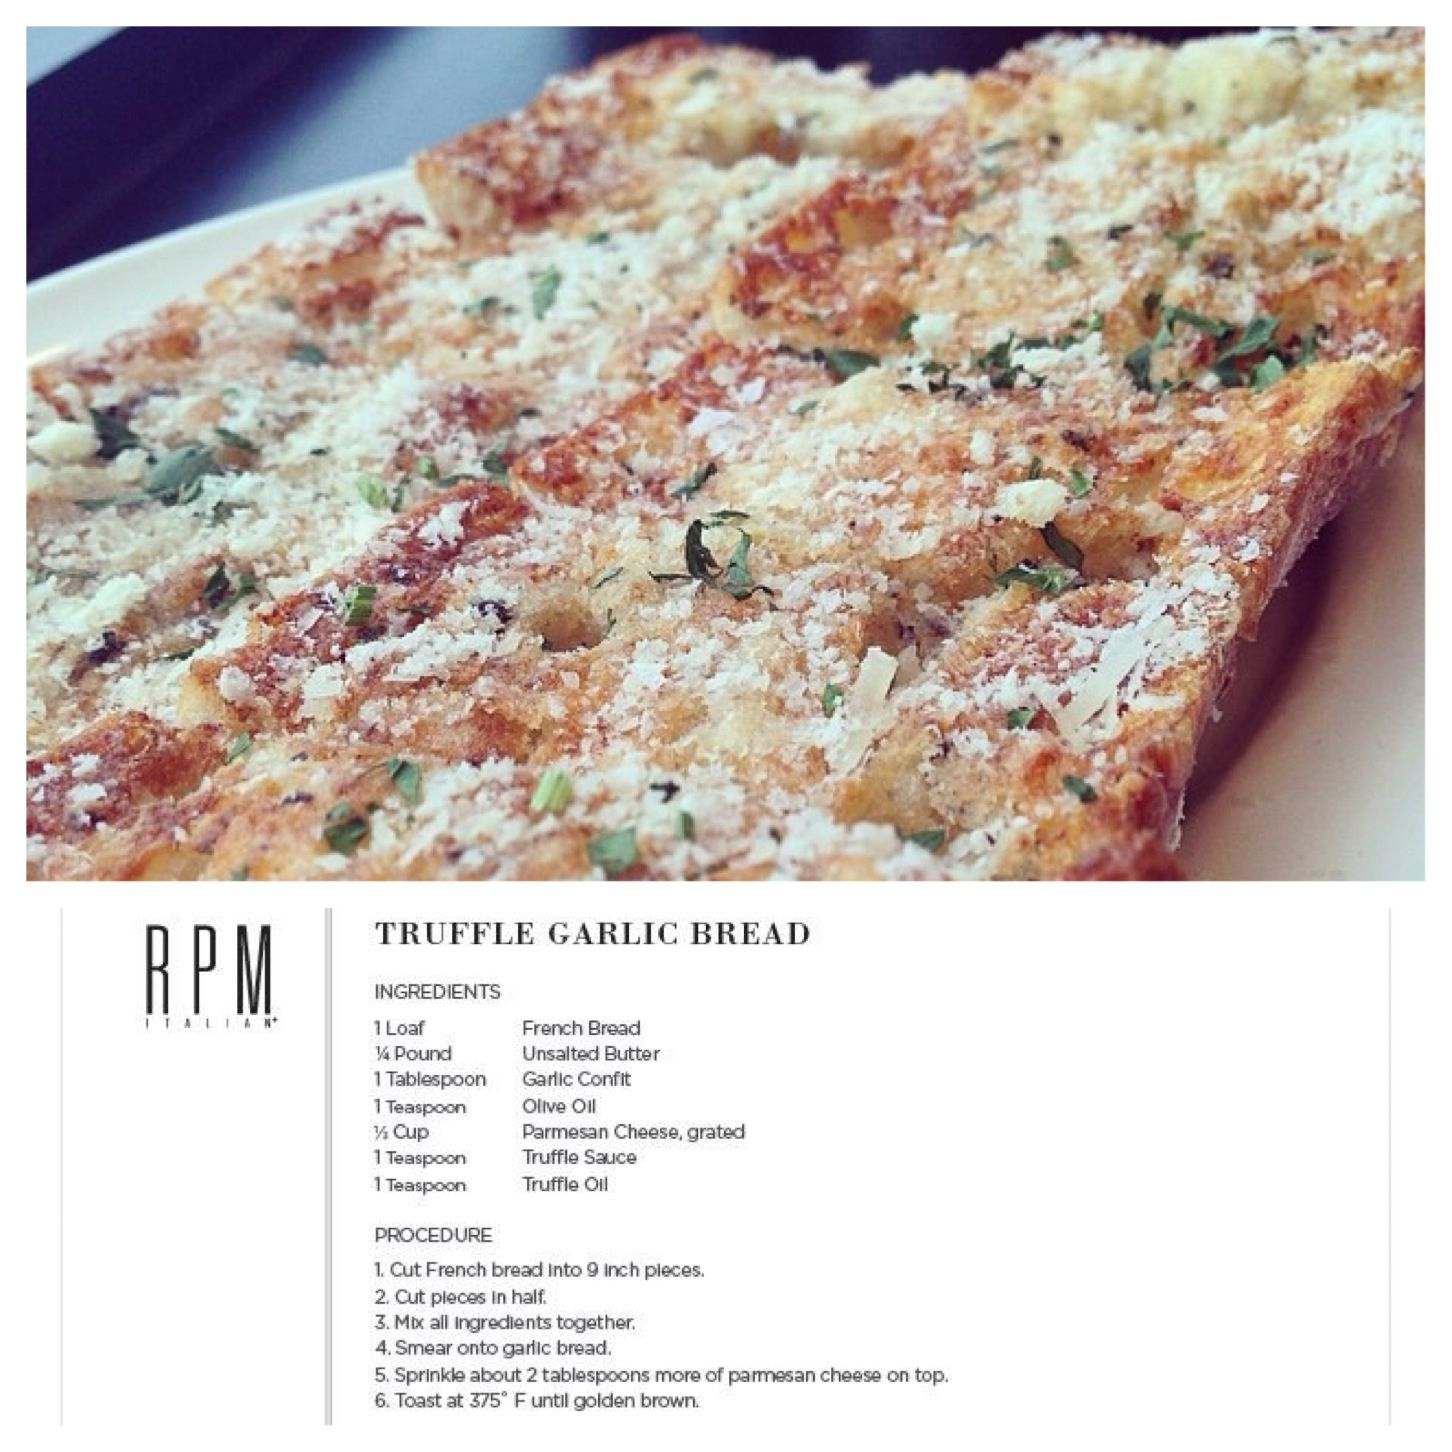 Truffle garlic bread recipe from rpm italian restaurant in chicago dishes forumfinder Image collections